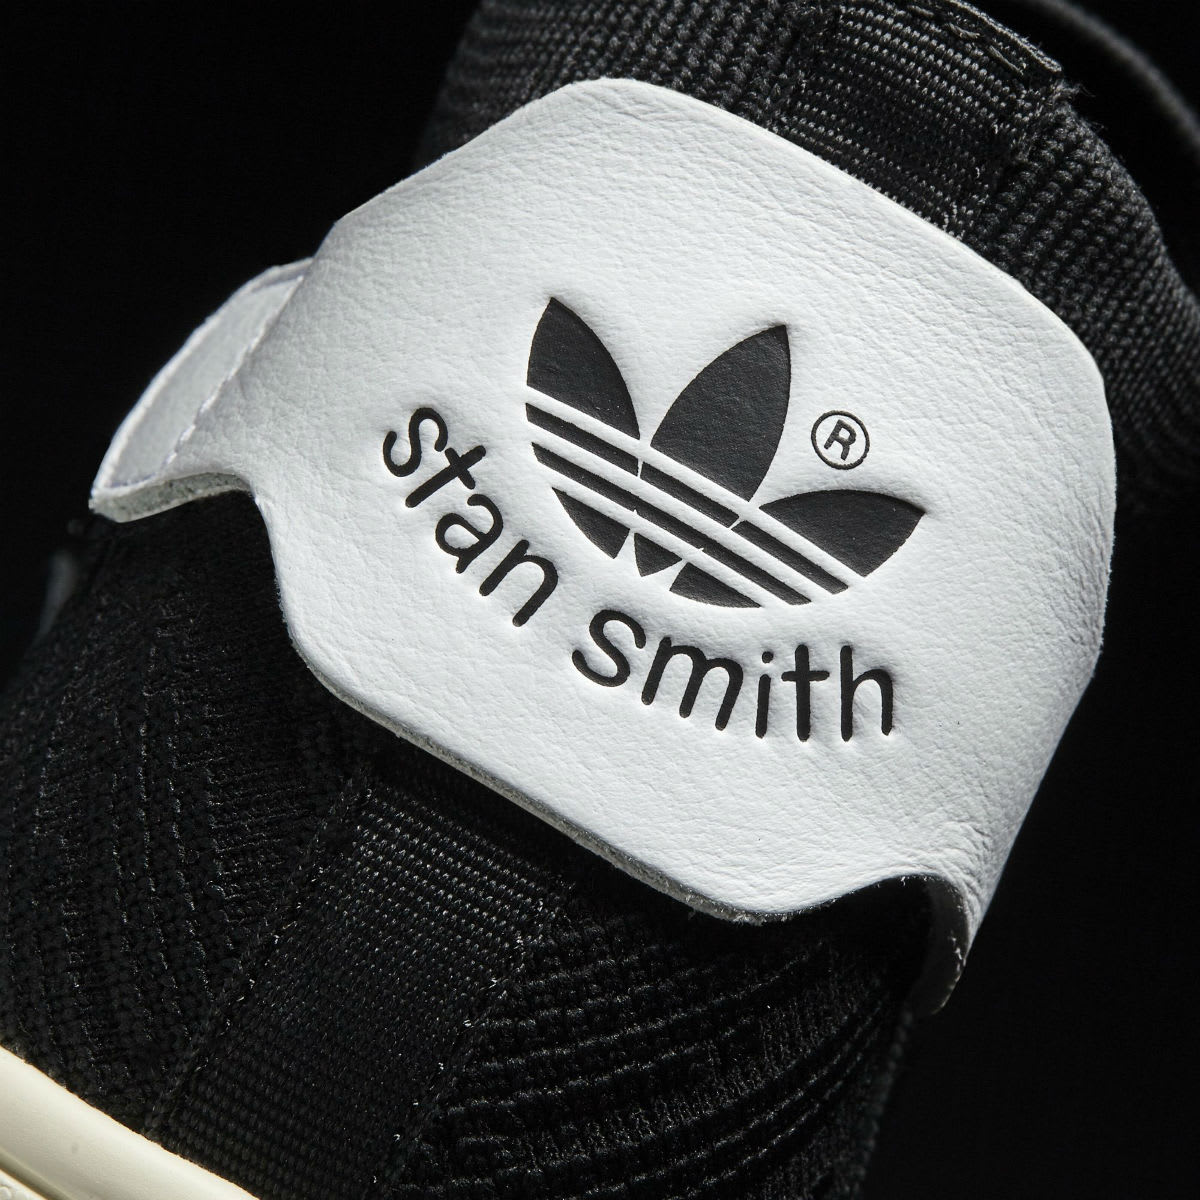 Adidas Stan Smith Sock Primeknit Sock Black Heel